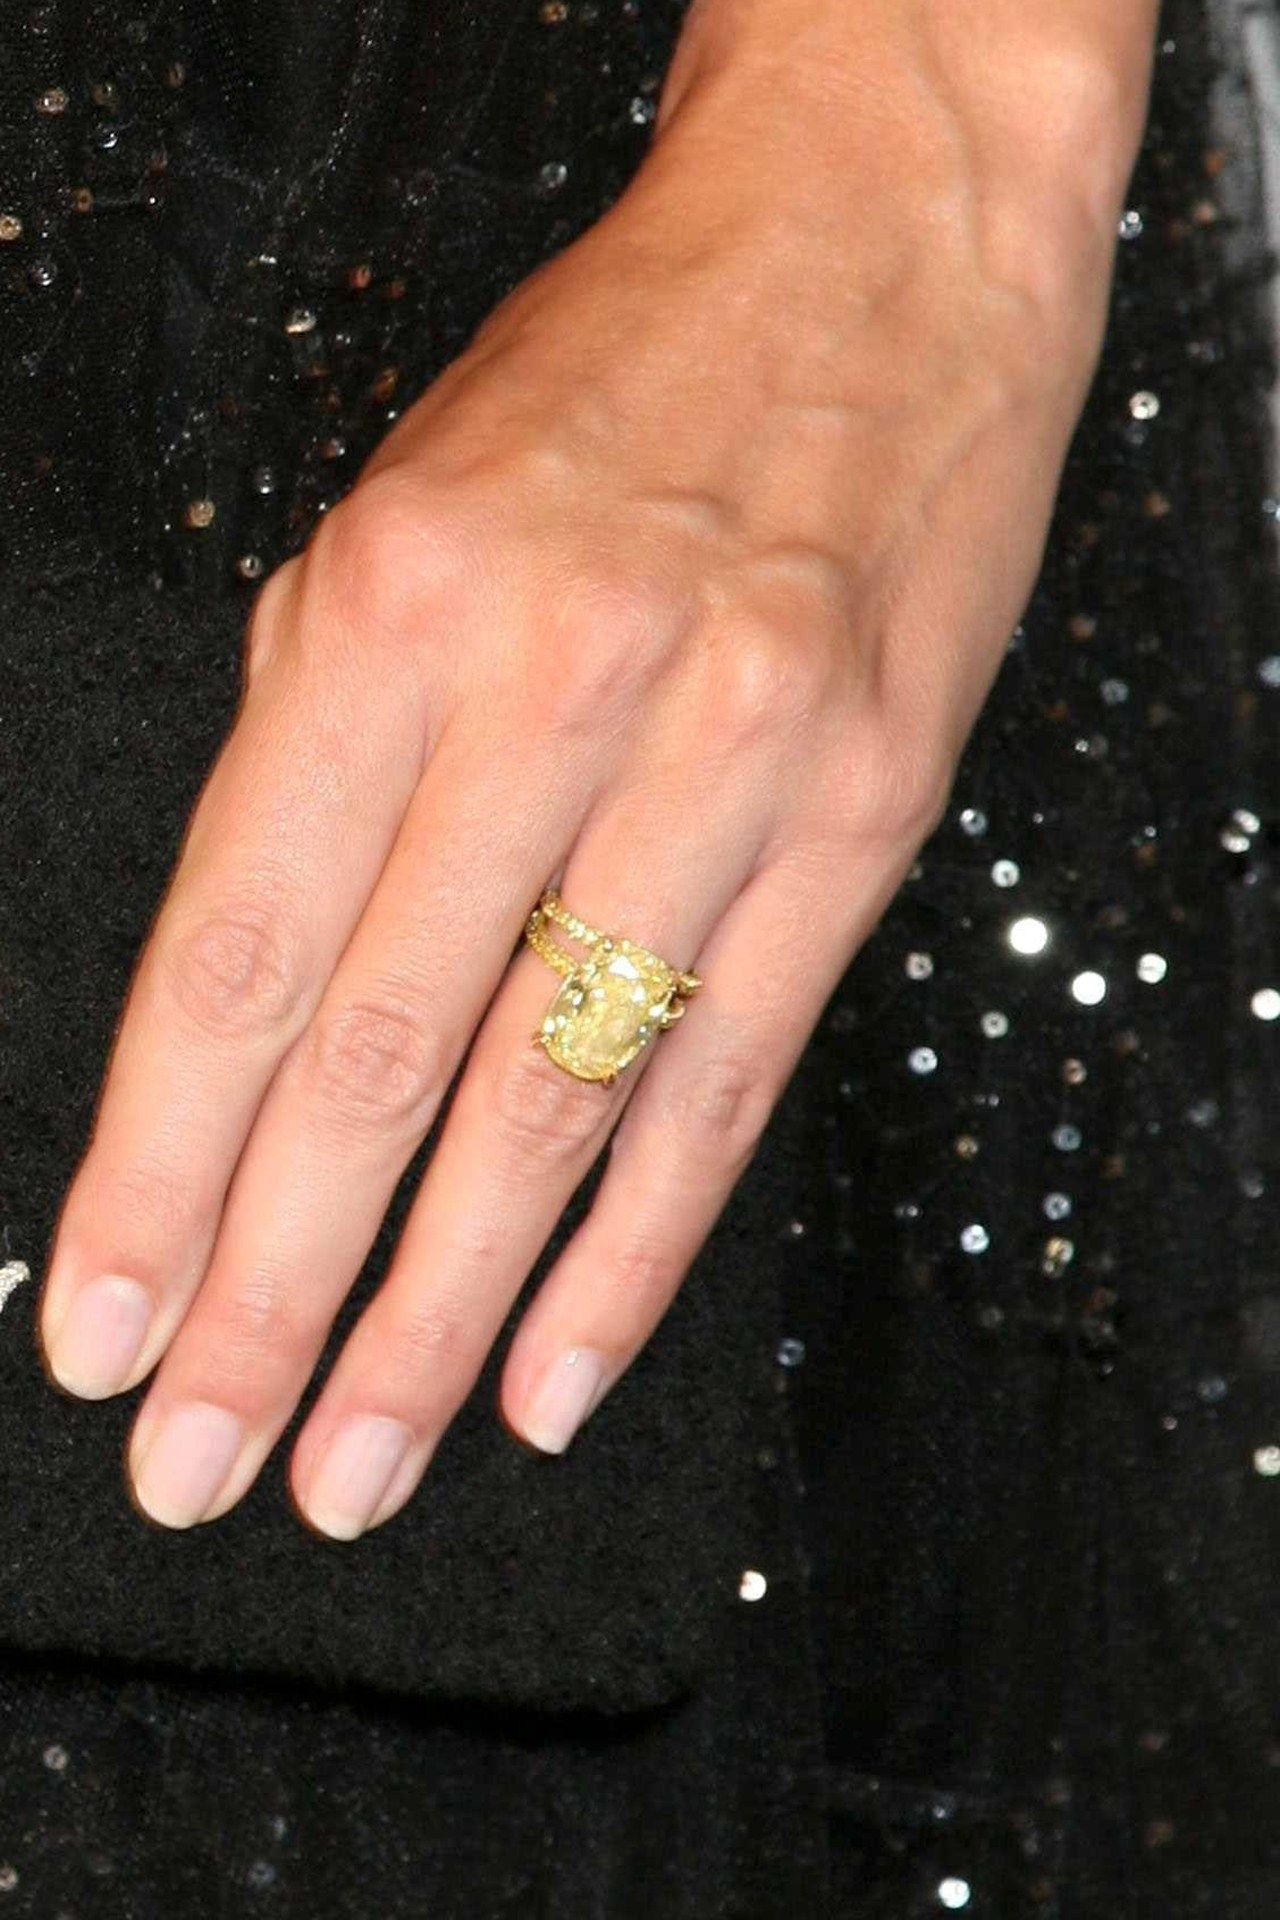 Exceptionnel Celebrity Engagement Rings Pictures U2013 Blake Lively, Beyonce, Olivia Palermo  (Vogue.com